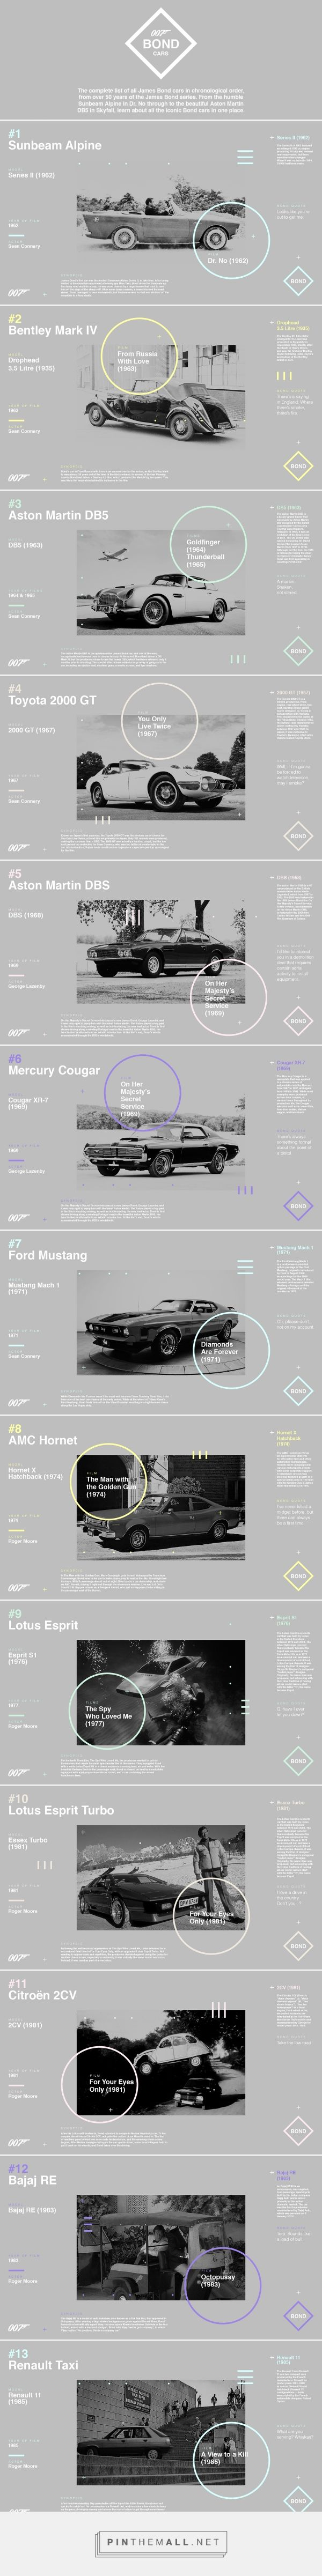 007 Bond Cars on Behance